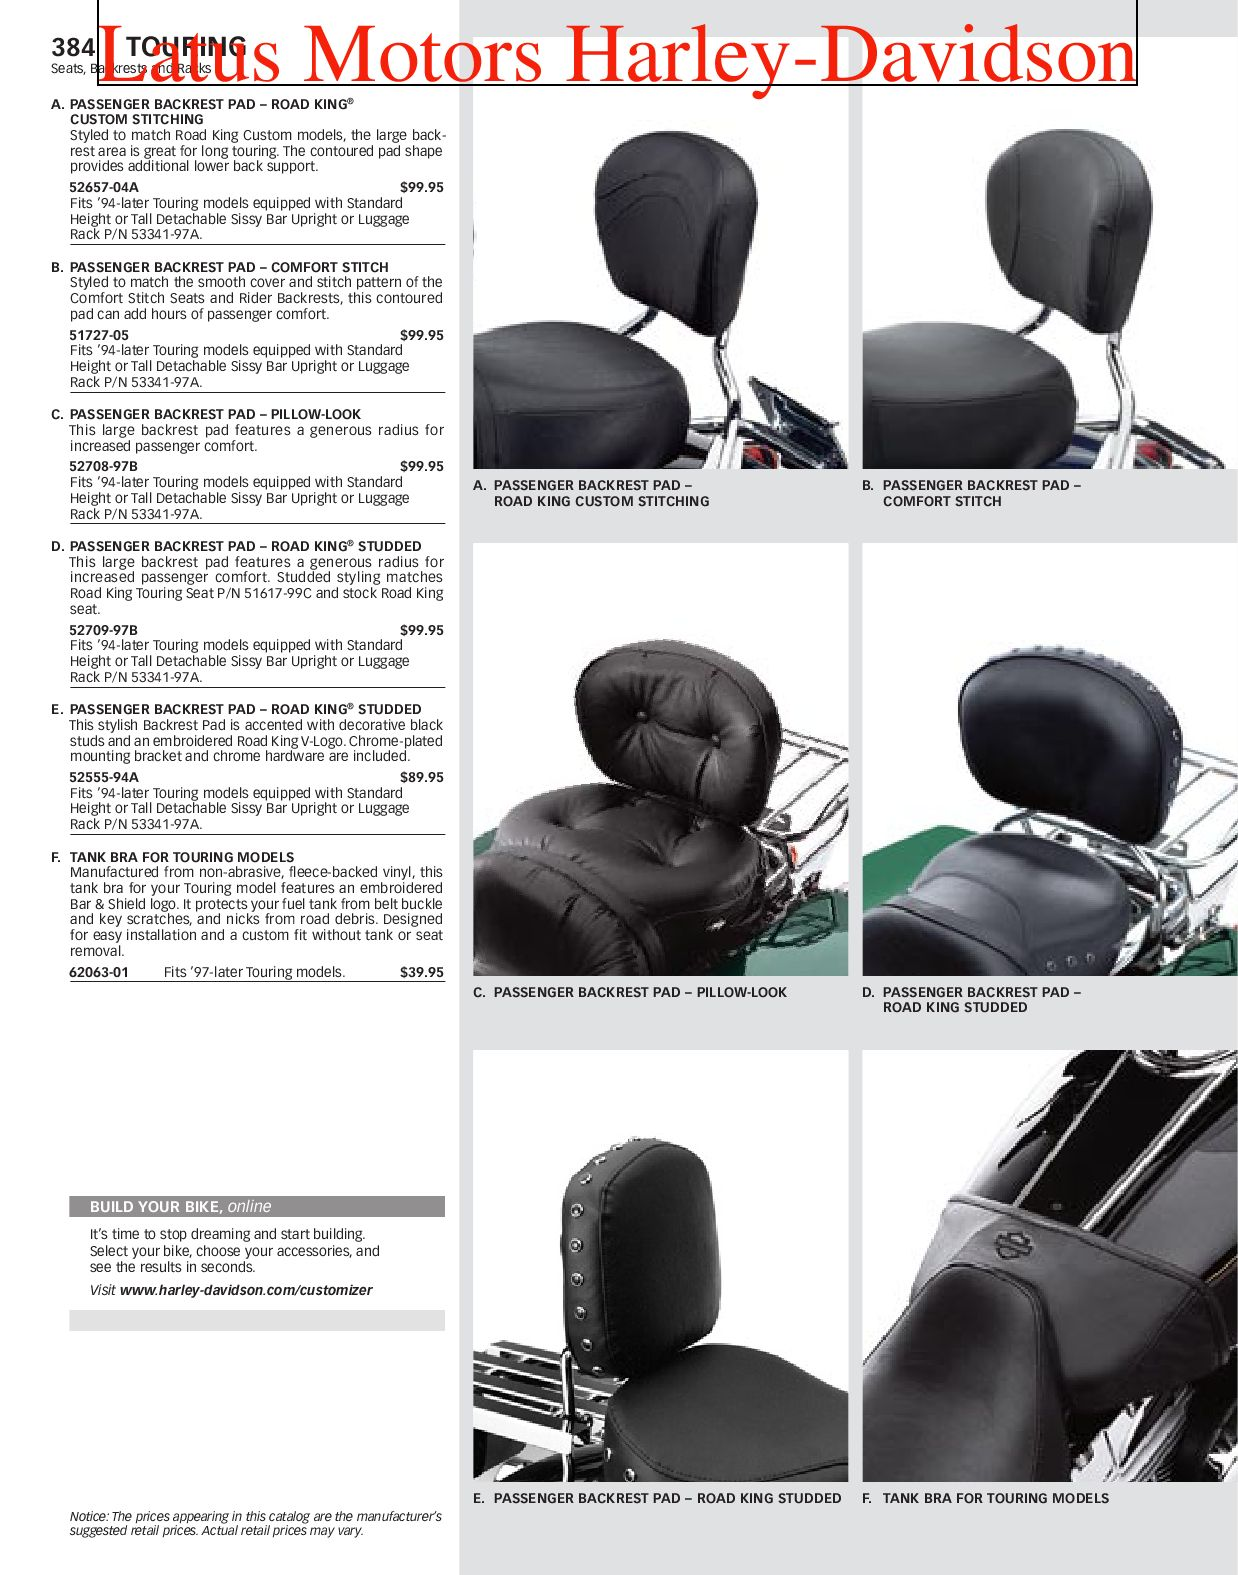 Remarkable Part 1 Harley Davidson Parts And Accessories Catalog By Machost Co Dining Chair Design Ideas Machostcouk